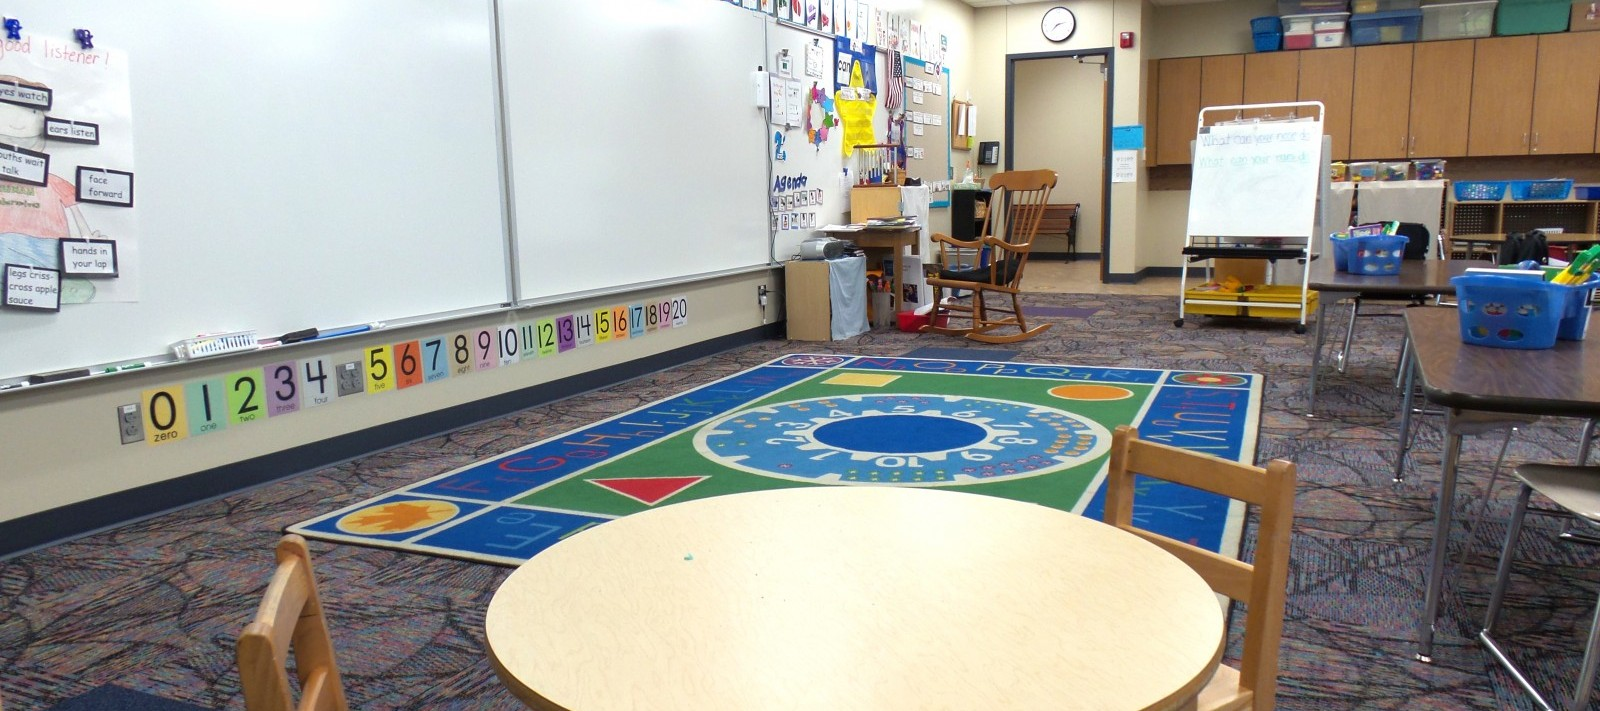 Truman Elementary classroom with small table